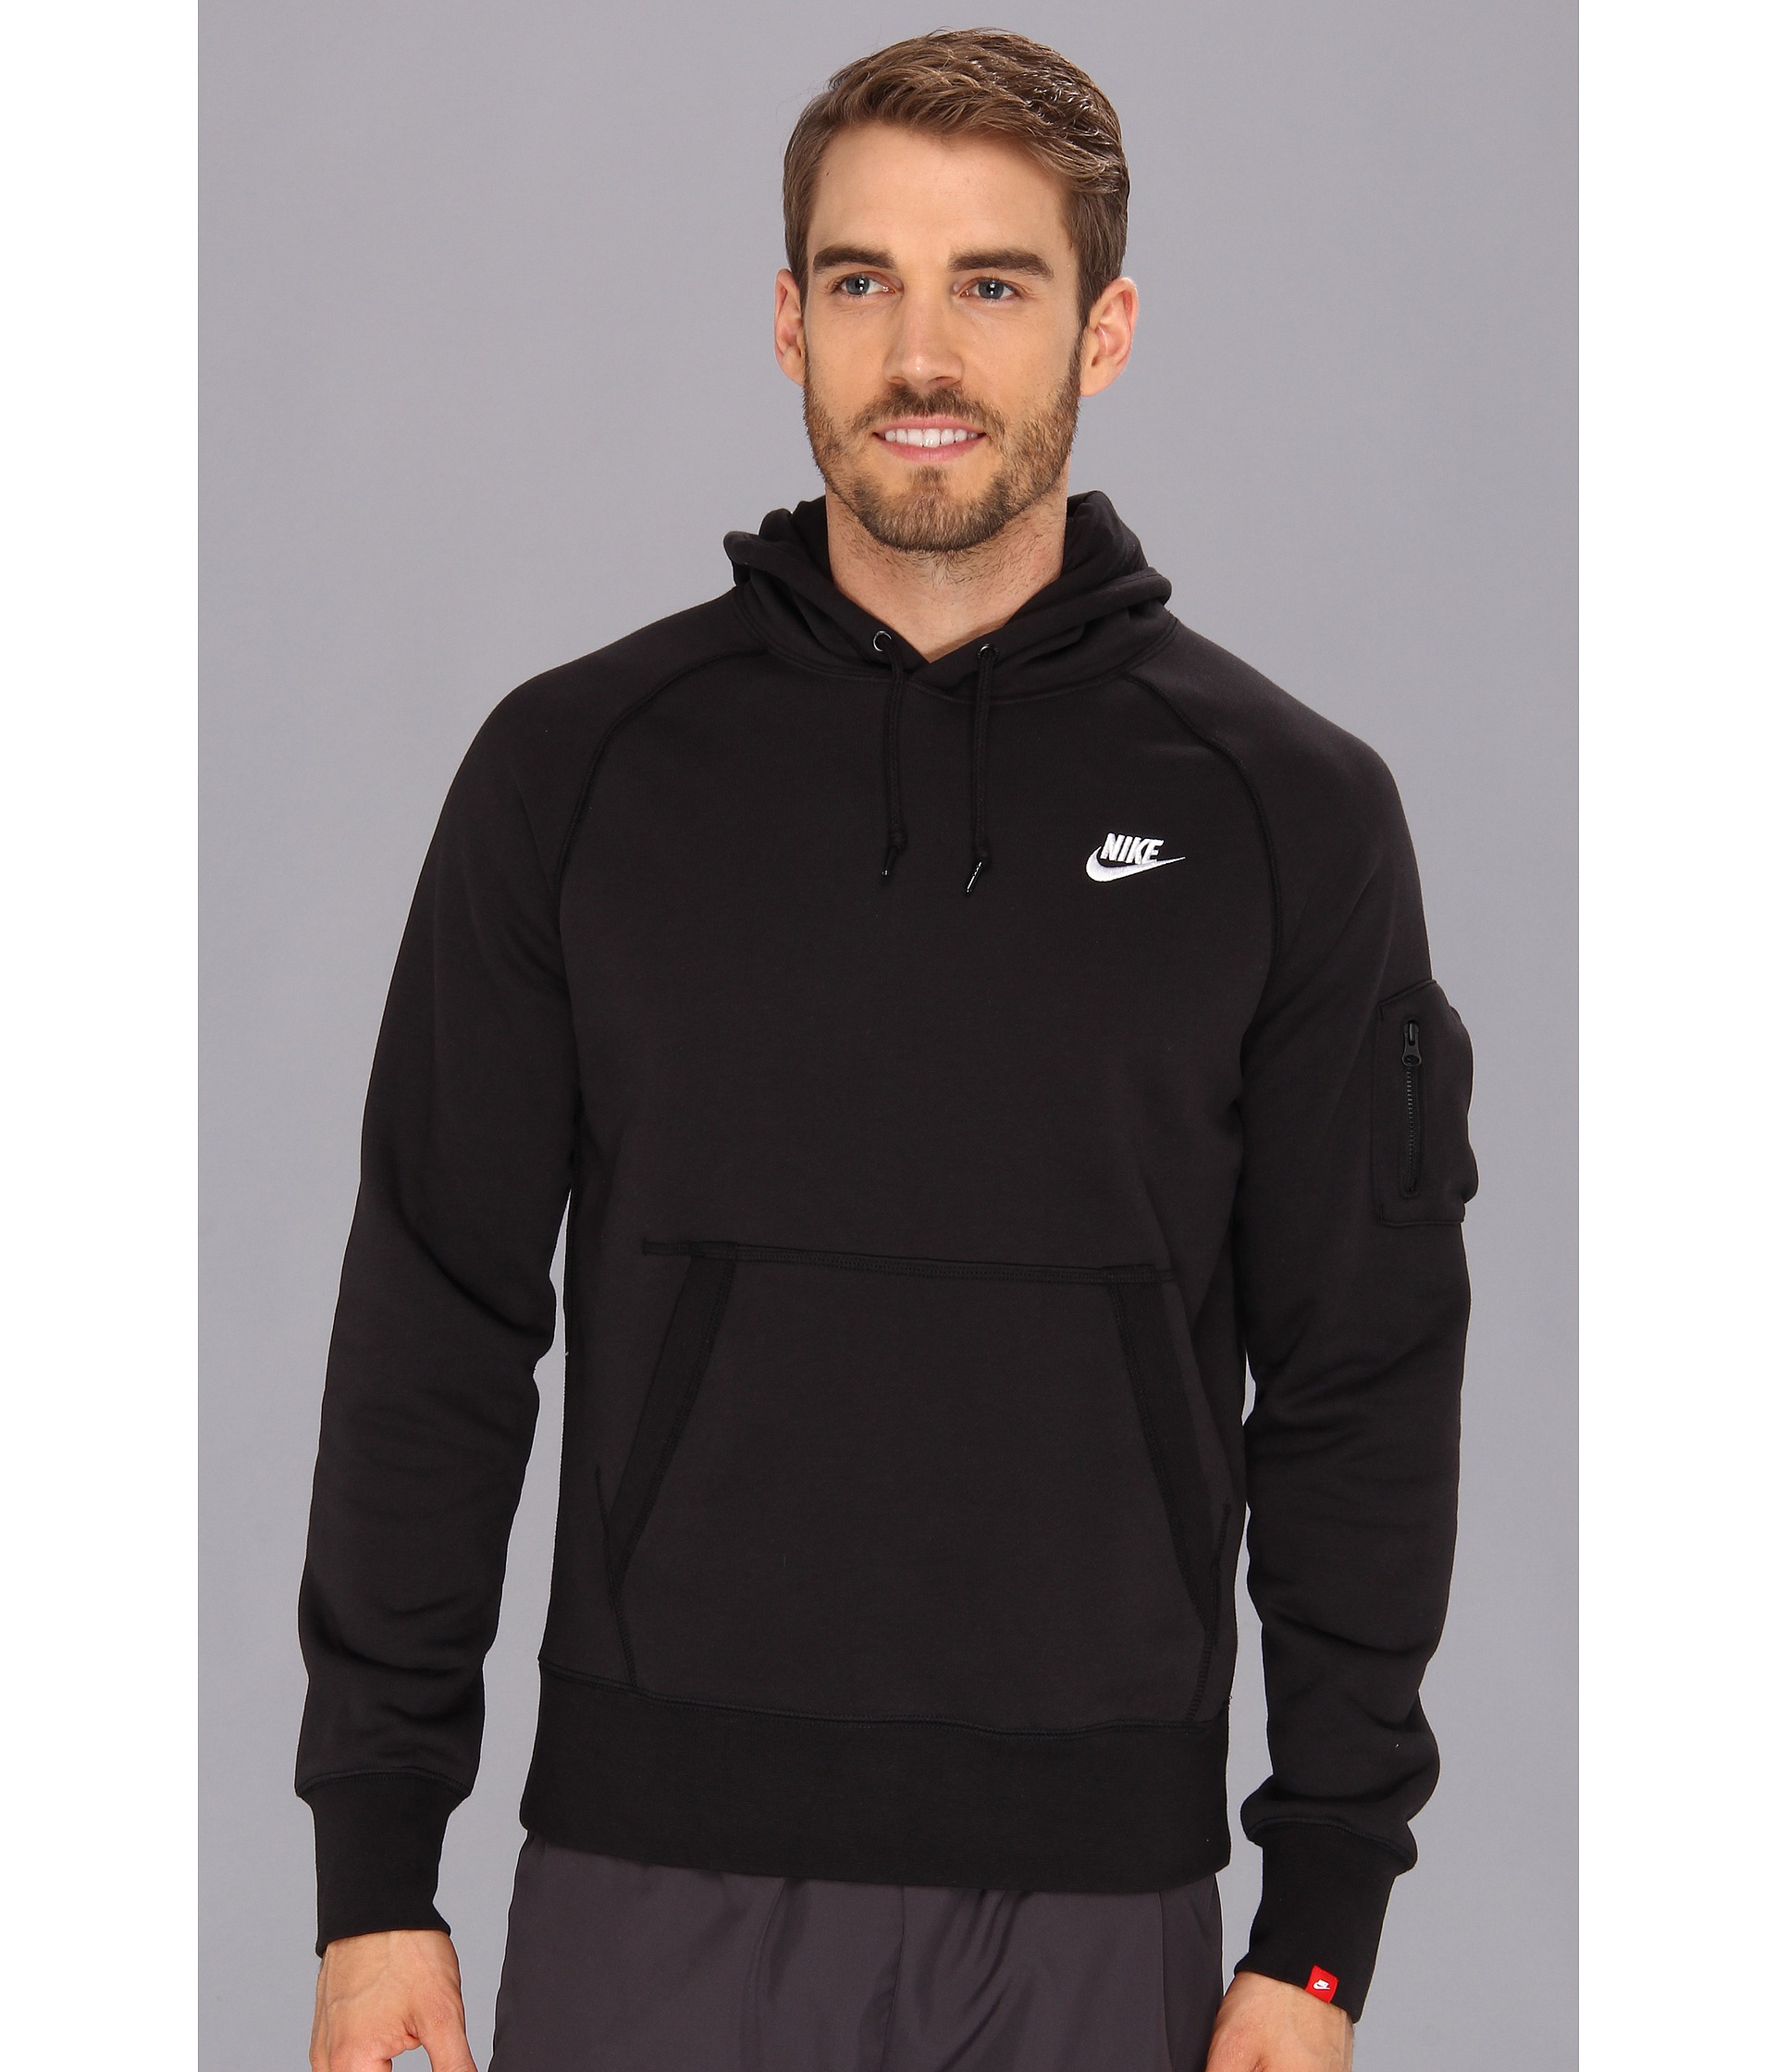 Nike Pullover Fleece Lyst Nike Aw77 Fleece Pullover Hoodie In Black For Men